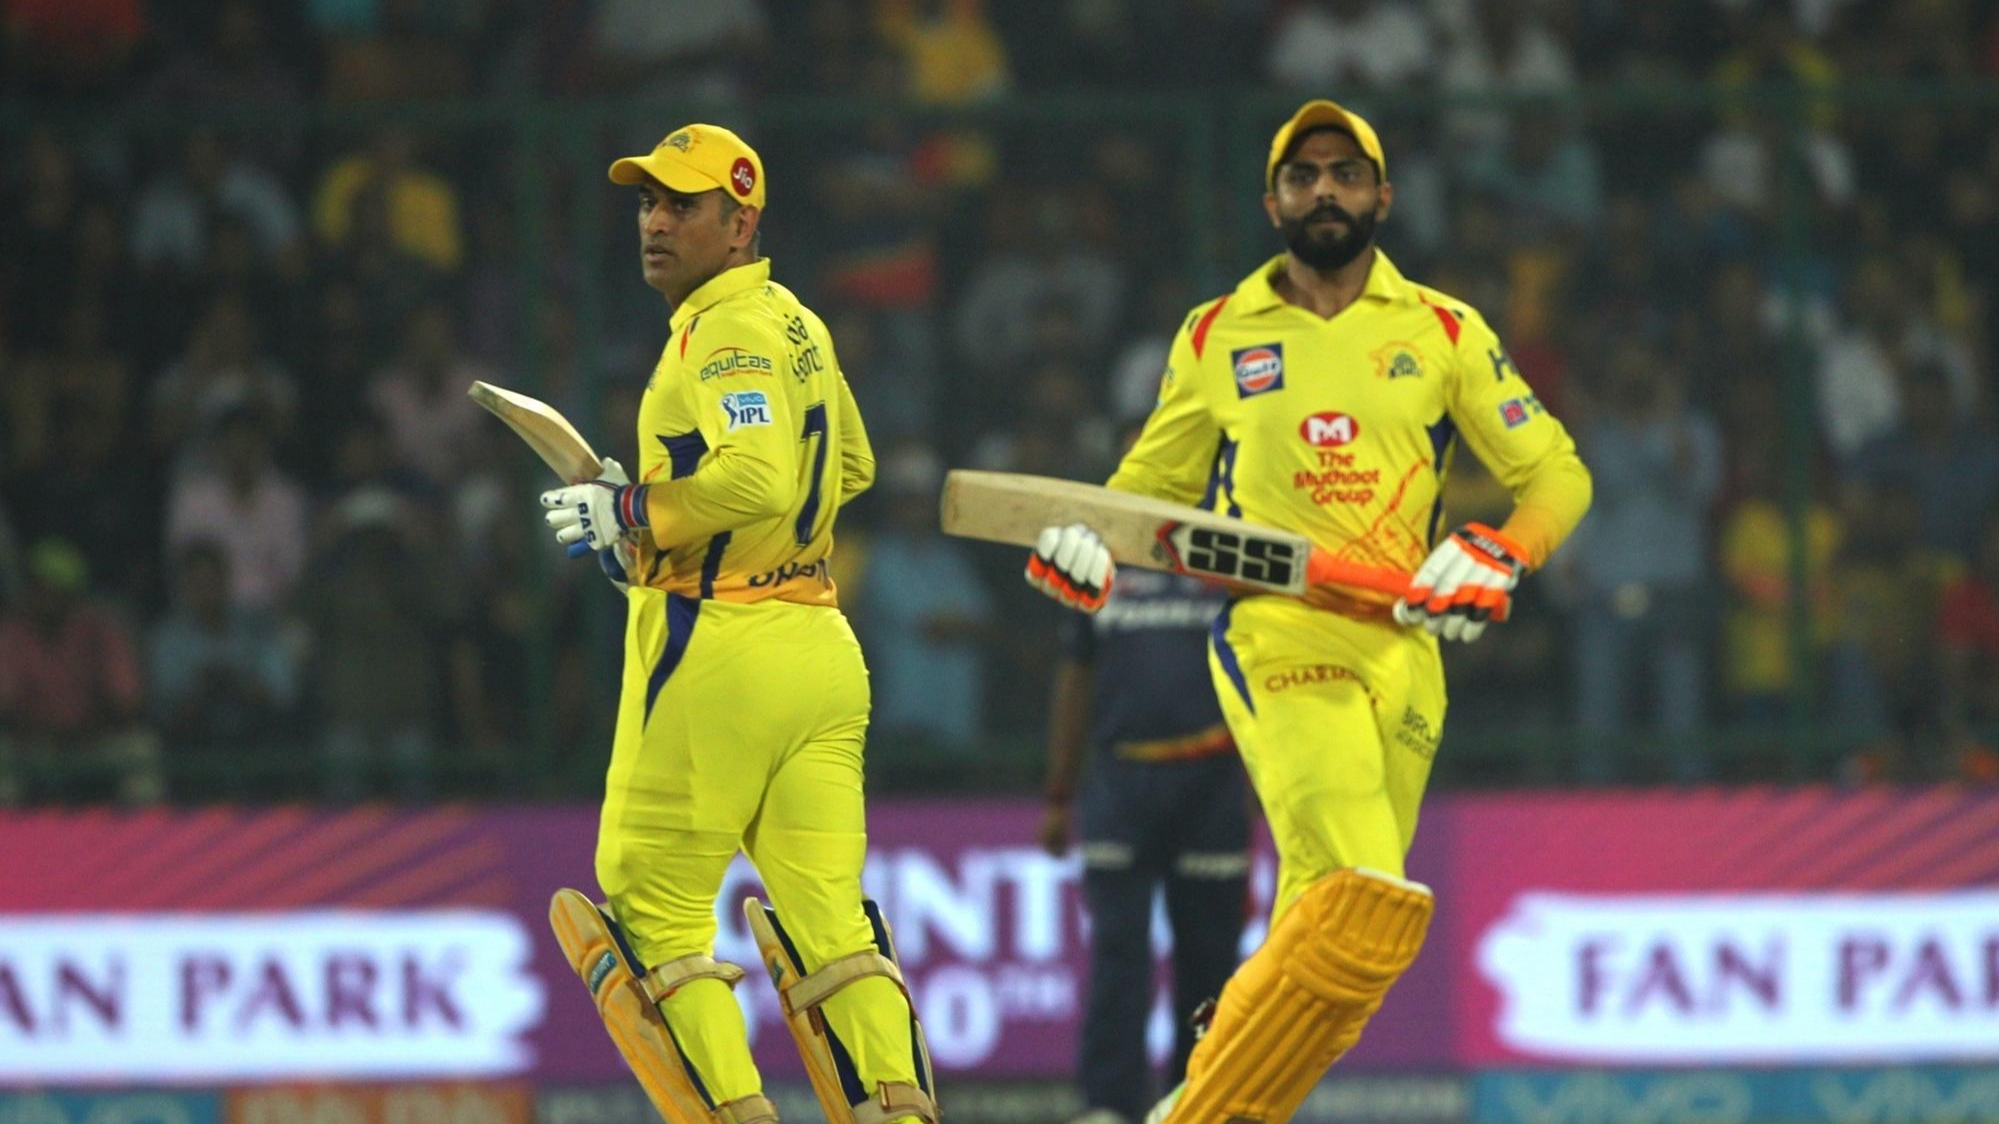 IPL 2018 : Match 56, CSK vs KXIP - Statistical Preview